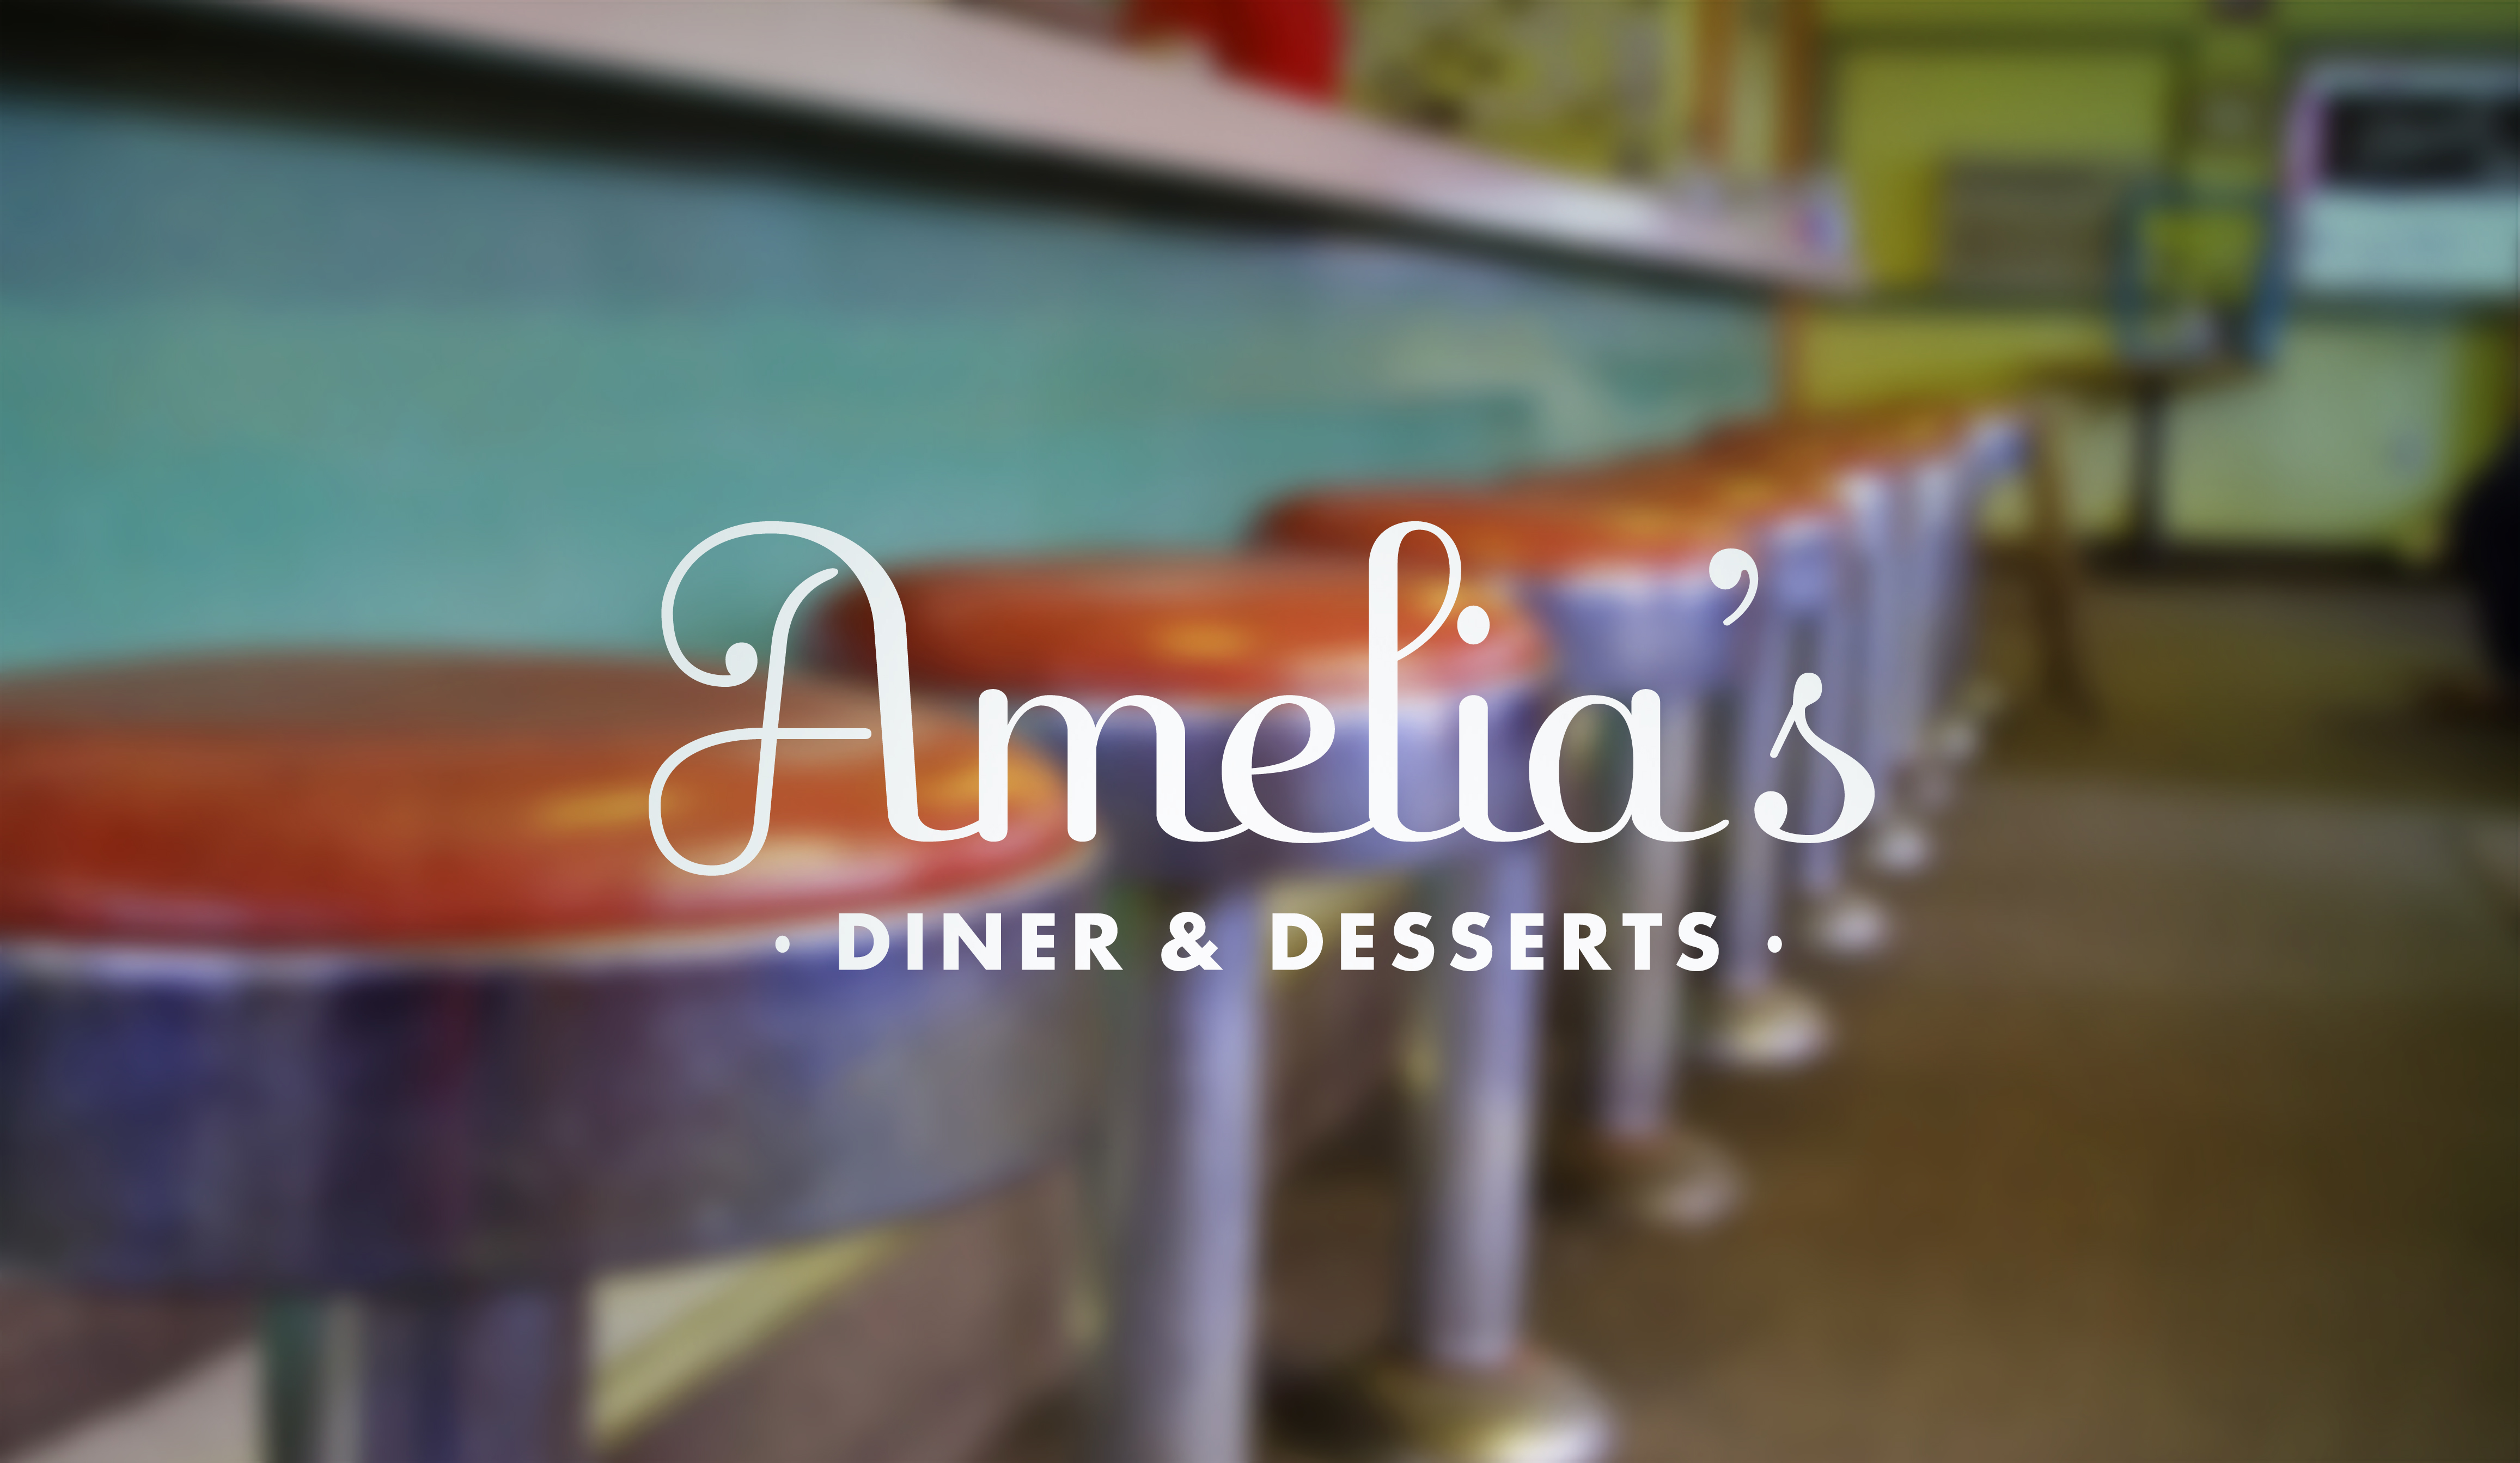 Brand Identity by Just Make Things – Amelia's Diner Menu